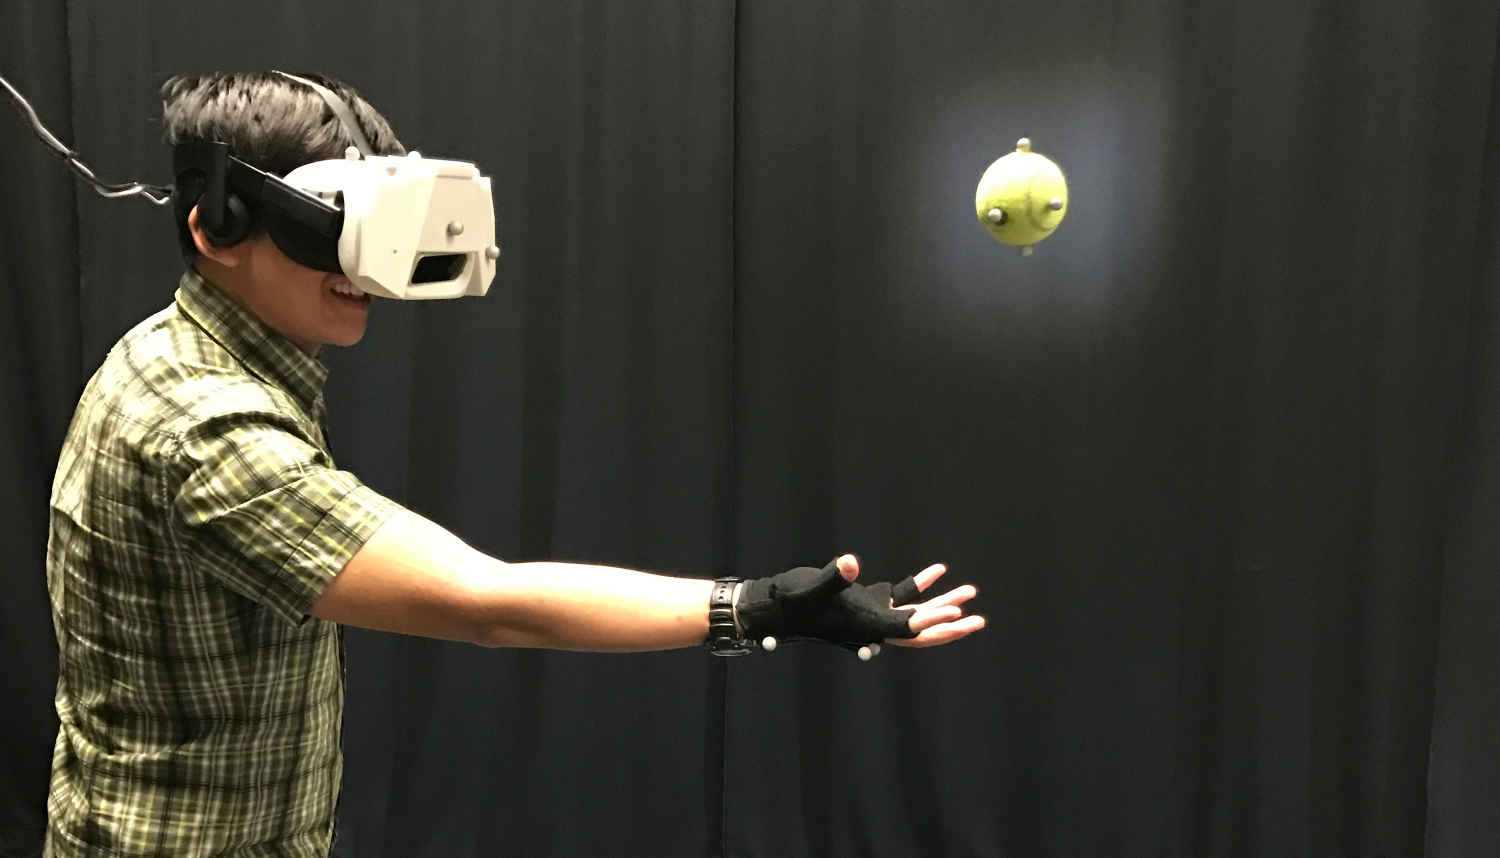 Disney Research Shows How VR Can Be Used to Study Human Perception